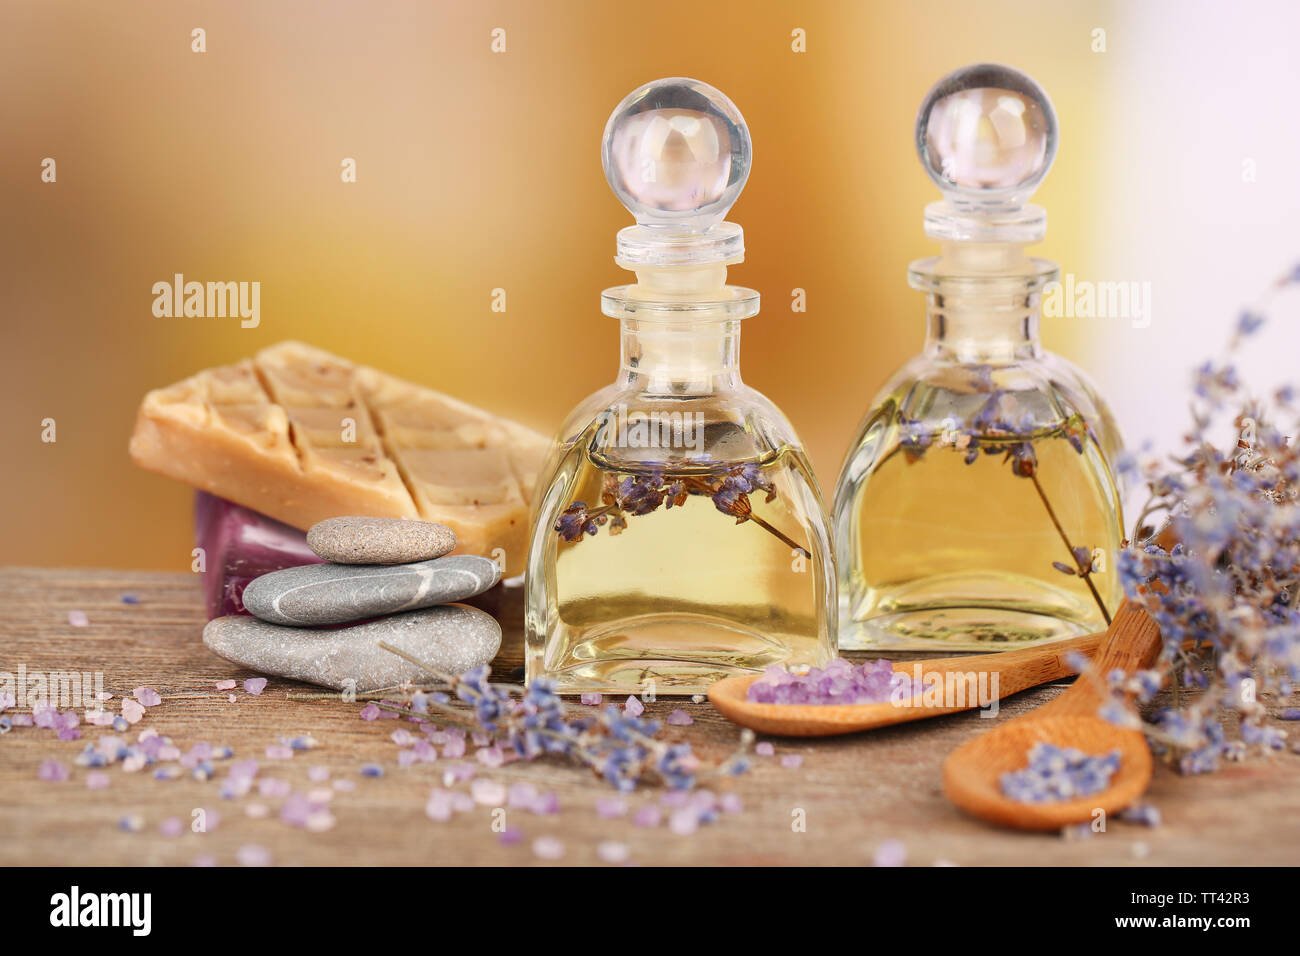 Spa still life with lavender oil and flowers on wooden table, on light background - Stock Image